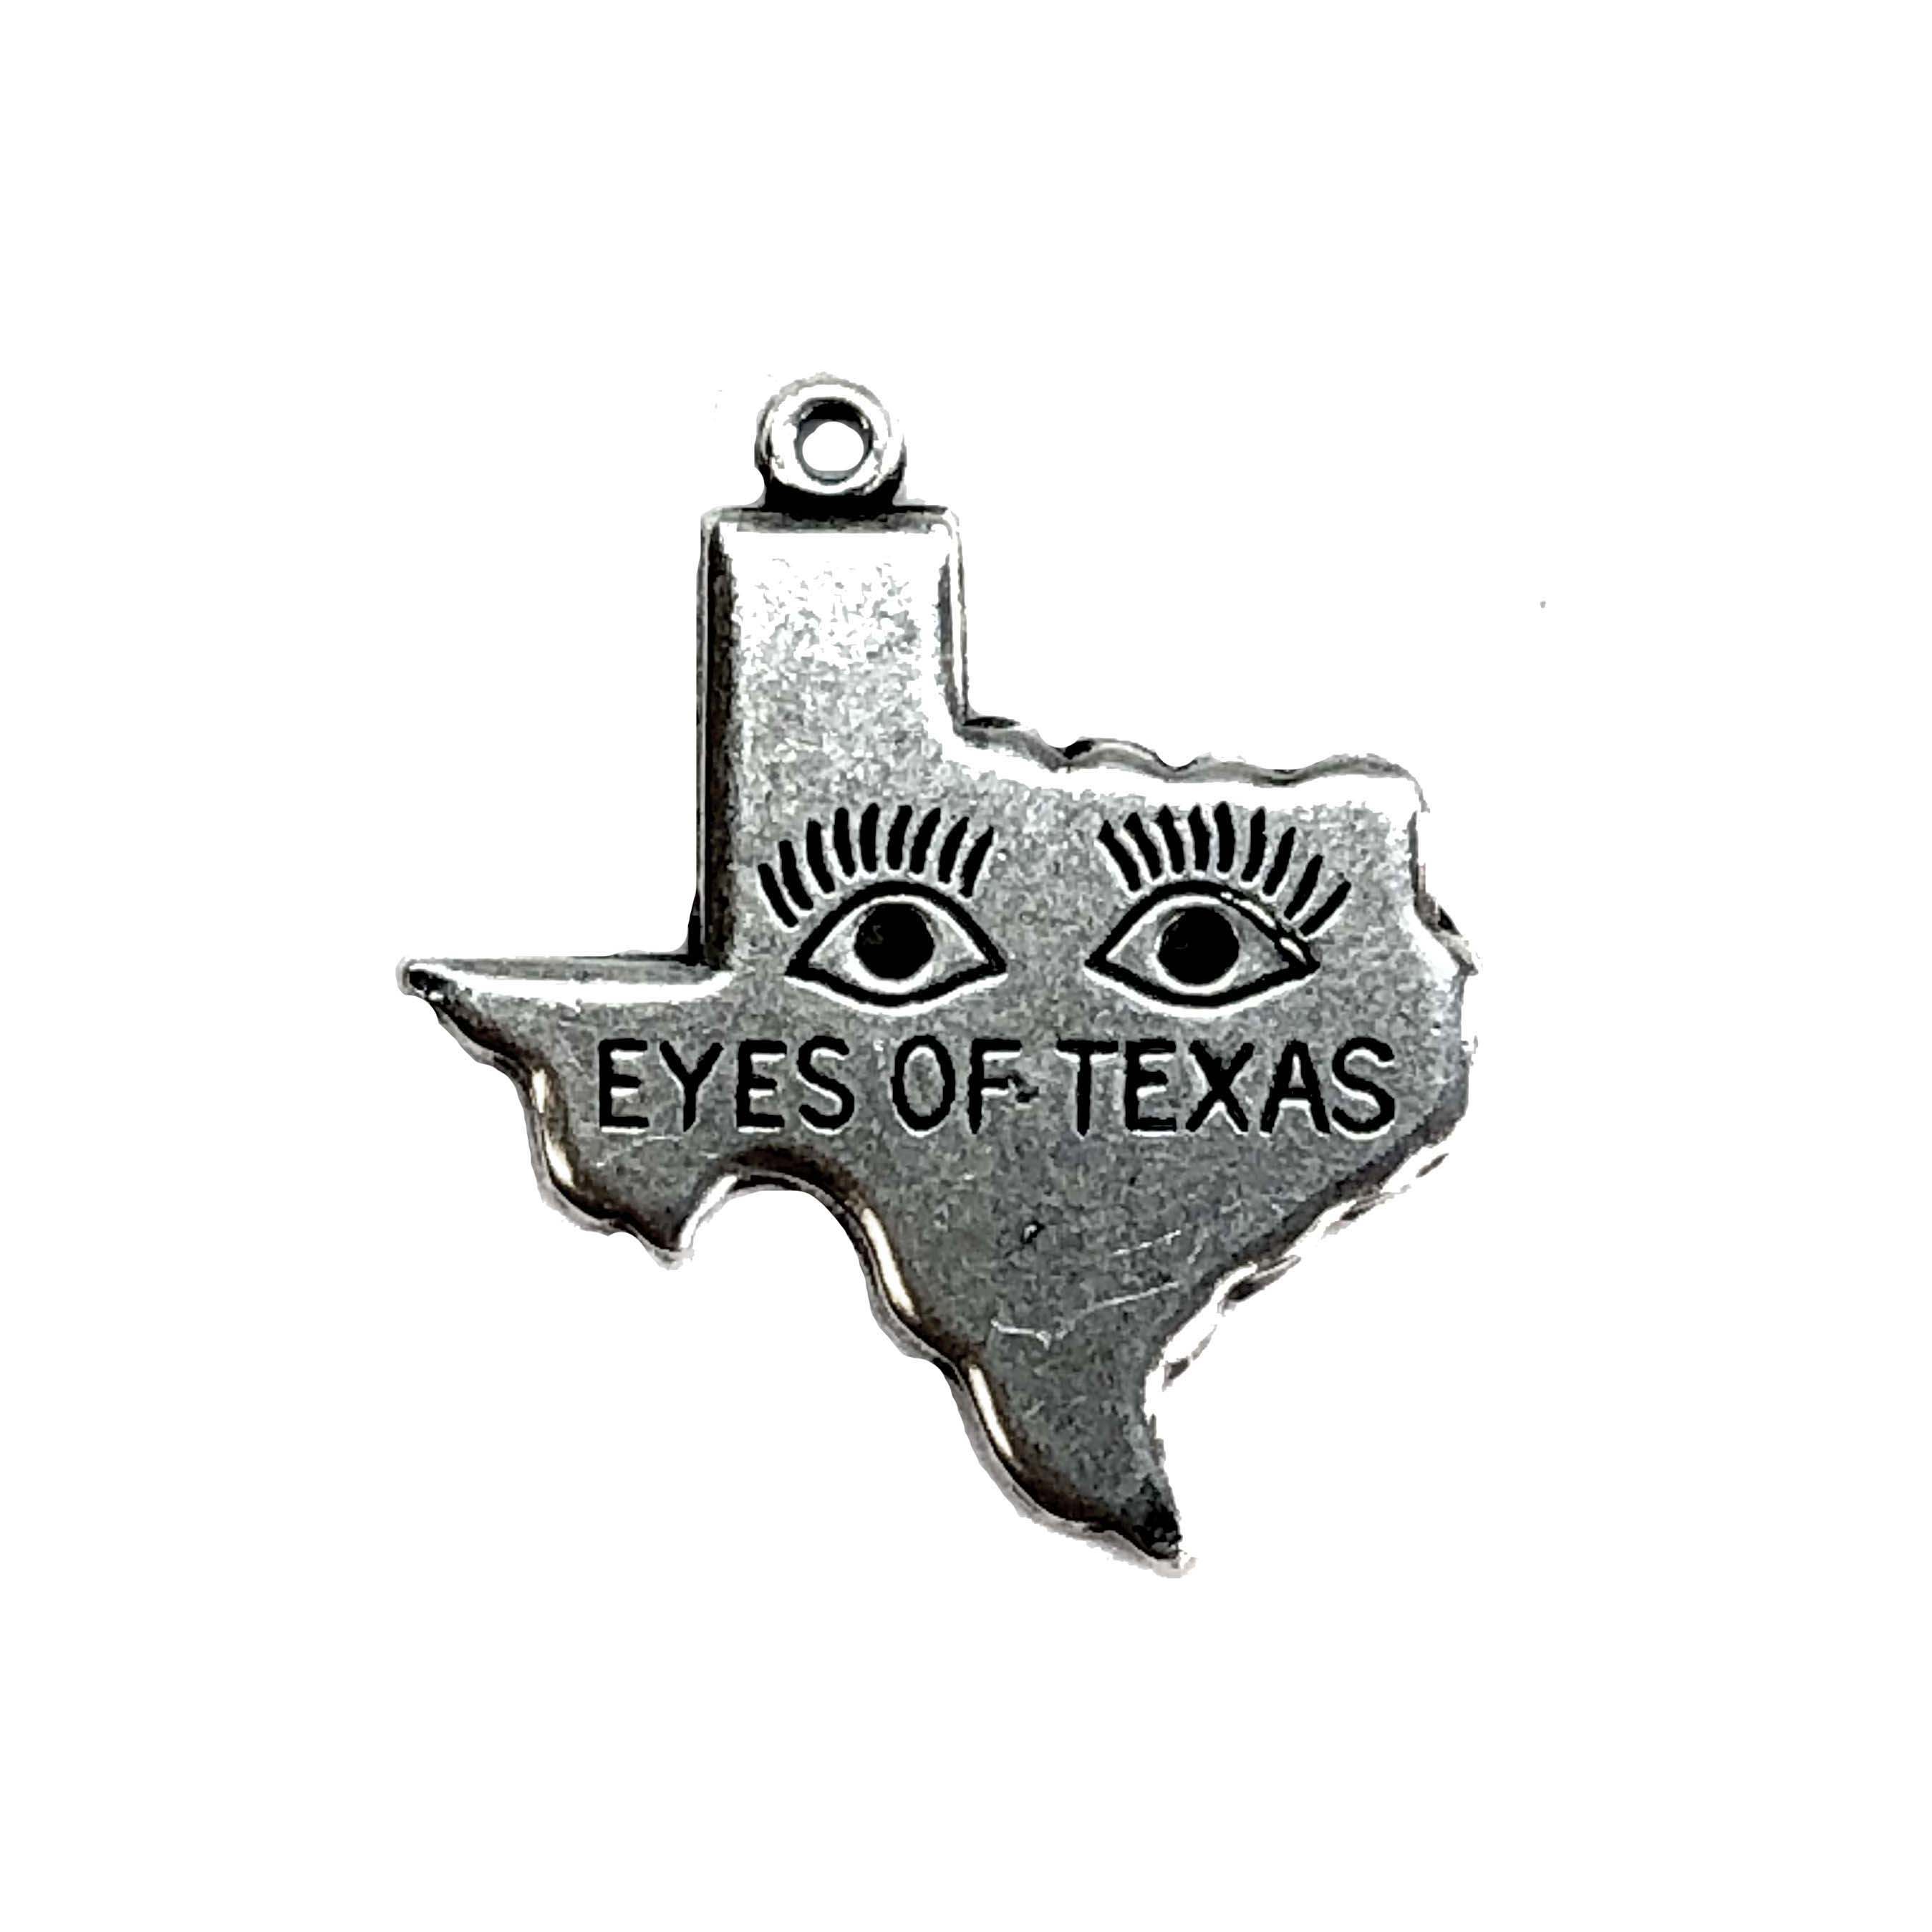 eyes of texas, charm, pendant, 06909, silverware silverplate, state charm, Texas, state pendant, geography, United States, Bsue Boutiques, jewelry making, jewelry supplies